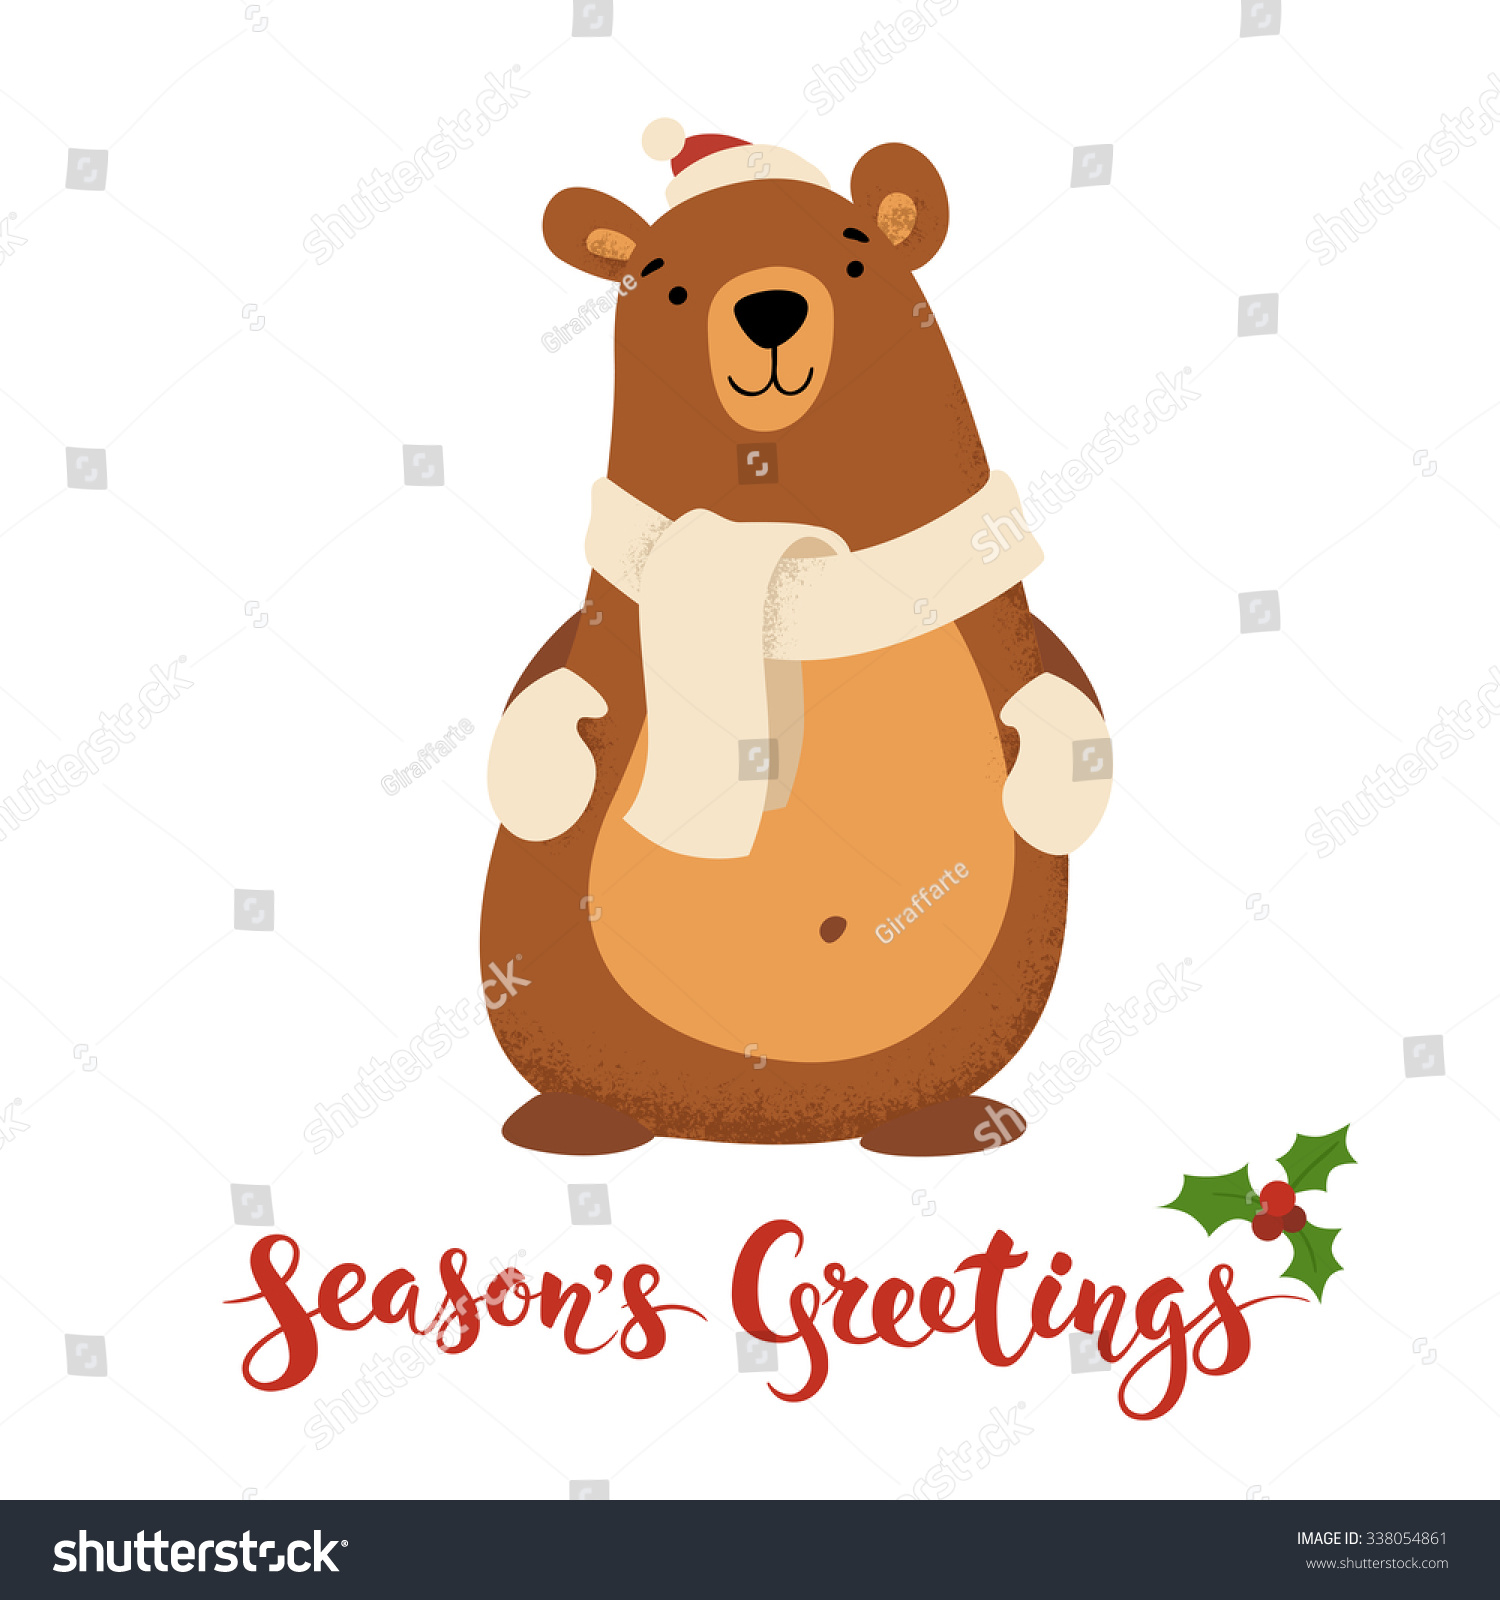 Seasons greetings vector card funny christmas stock vector seasons greetings vector card with funny christmas character vintage christmas card design with bear and kristyandbryce Choice Image